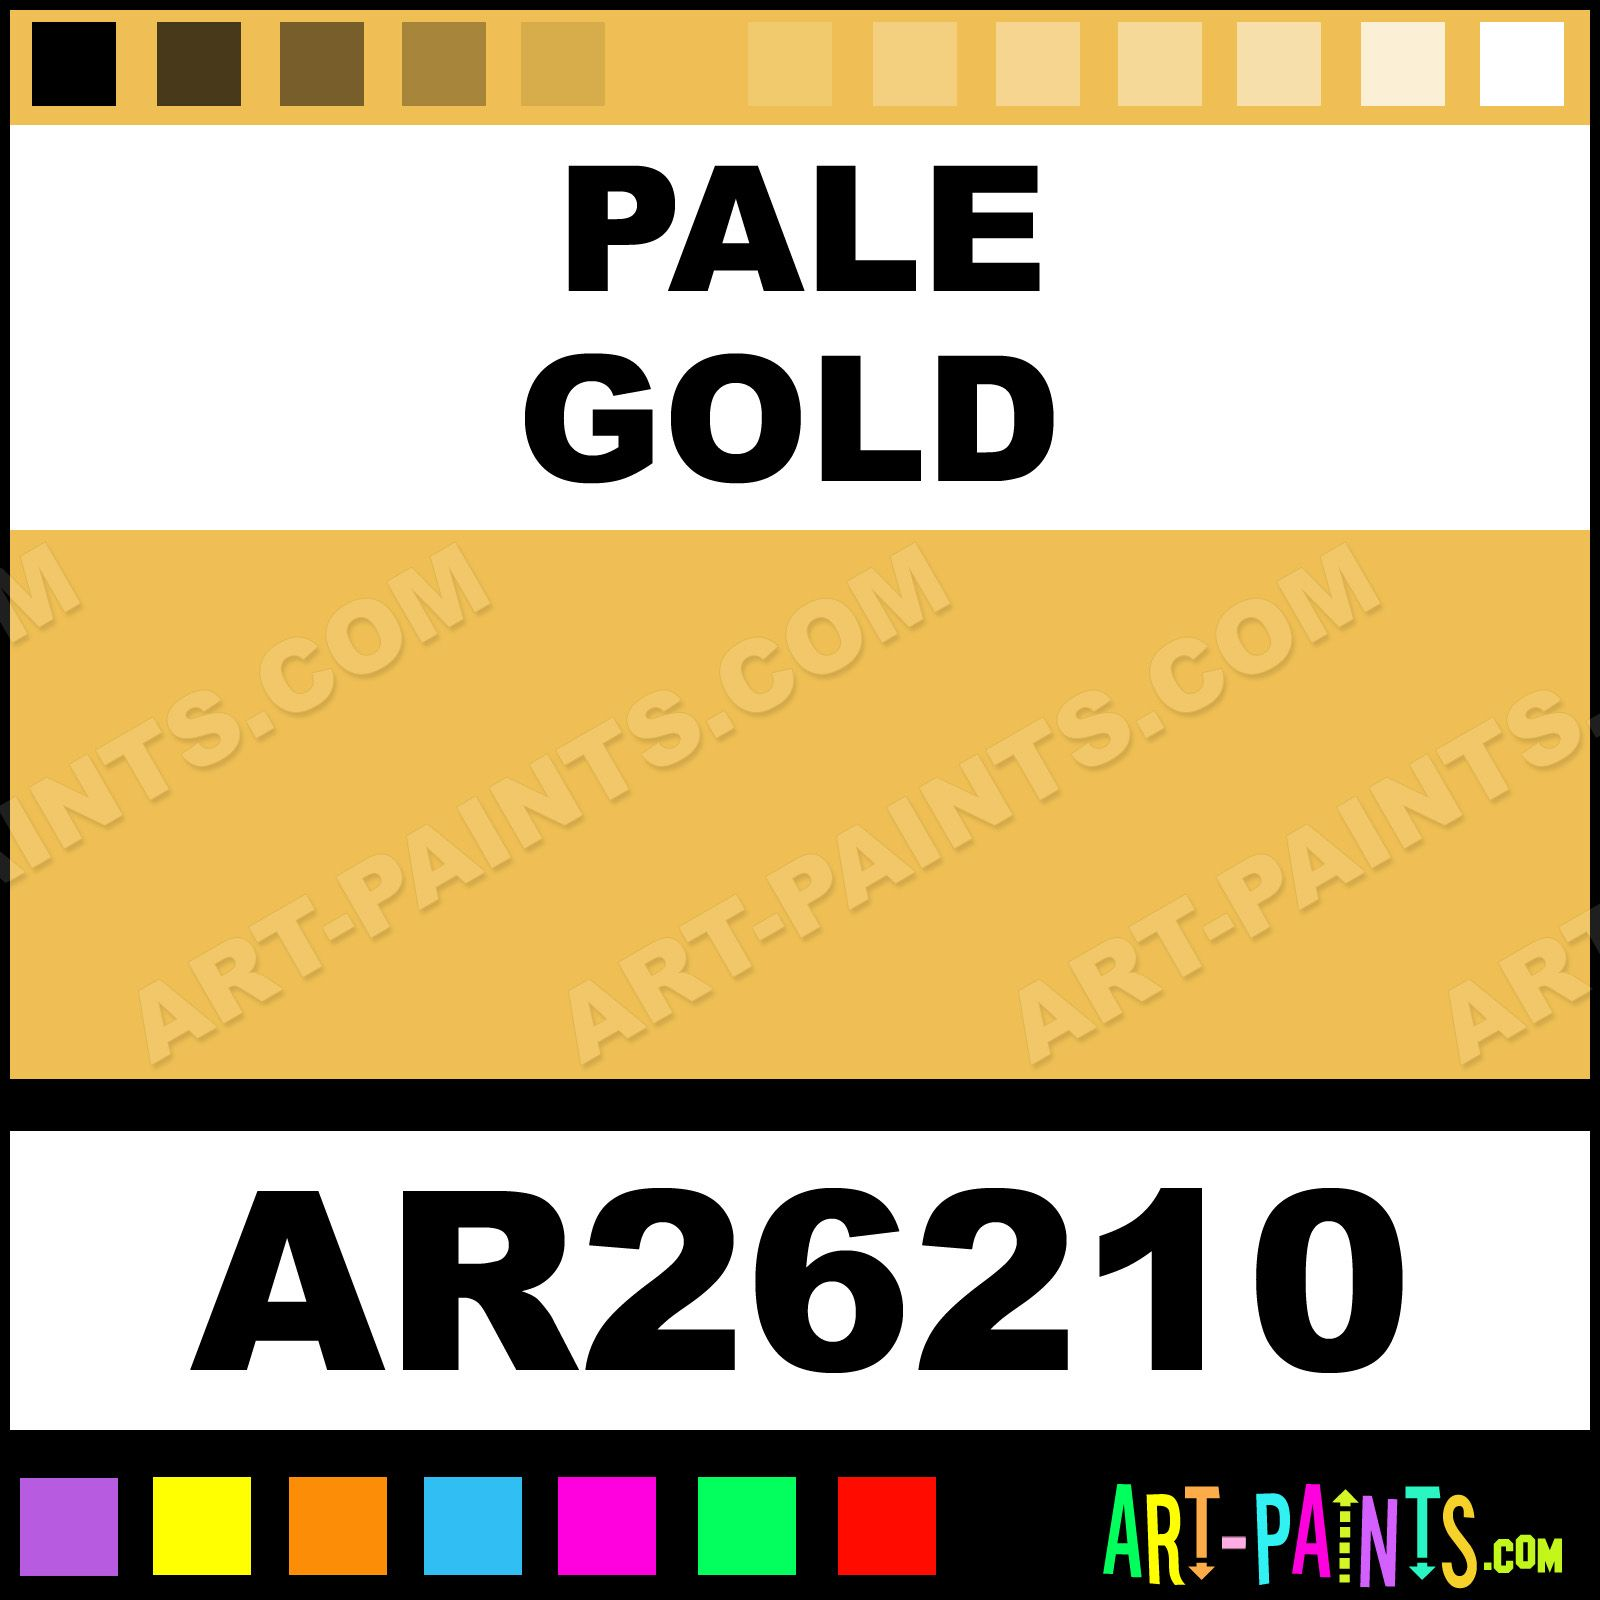 28 199 152 Pale Gold Efbf53 239 191 83 Yellow Painting Gold